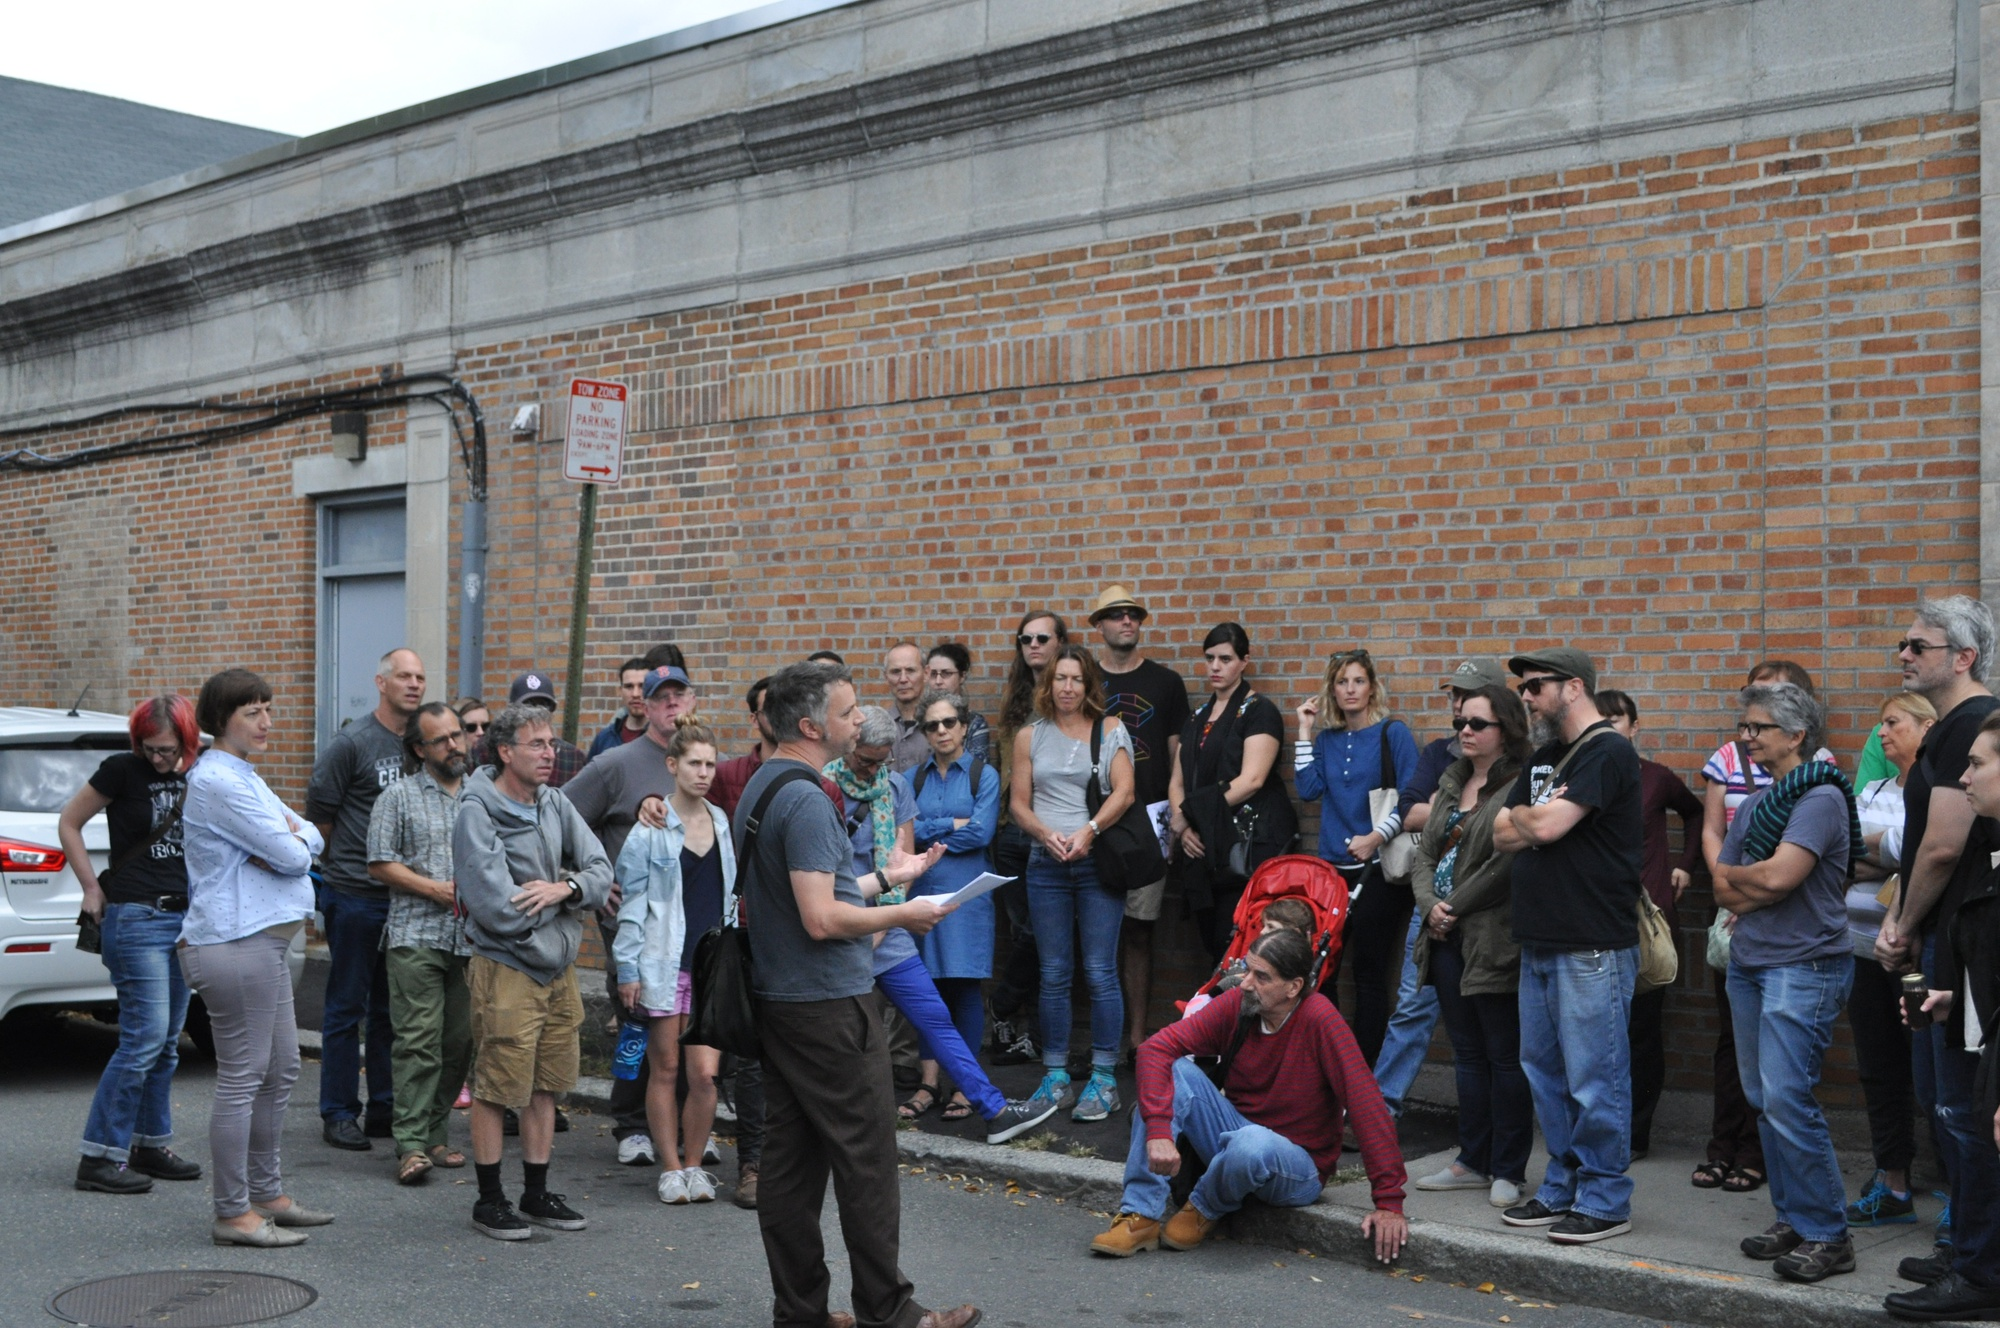 Tim Devin speaks to a crowd of over 60 people who have gathered for the counterculture walking tour of Inman Square.